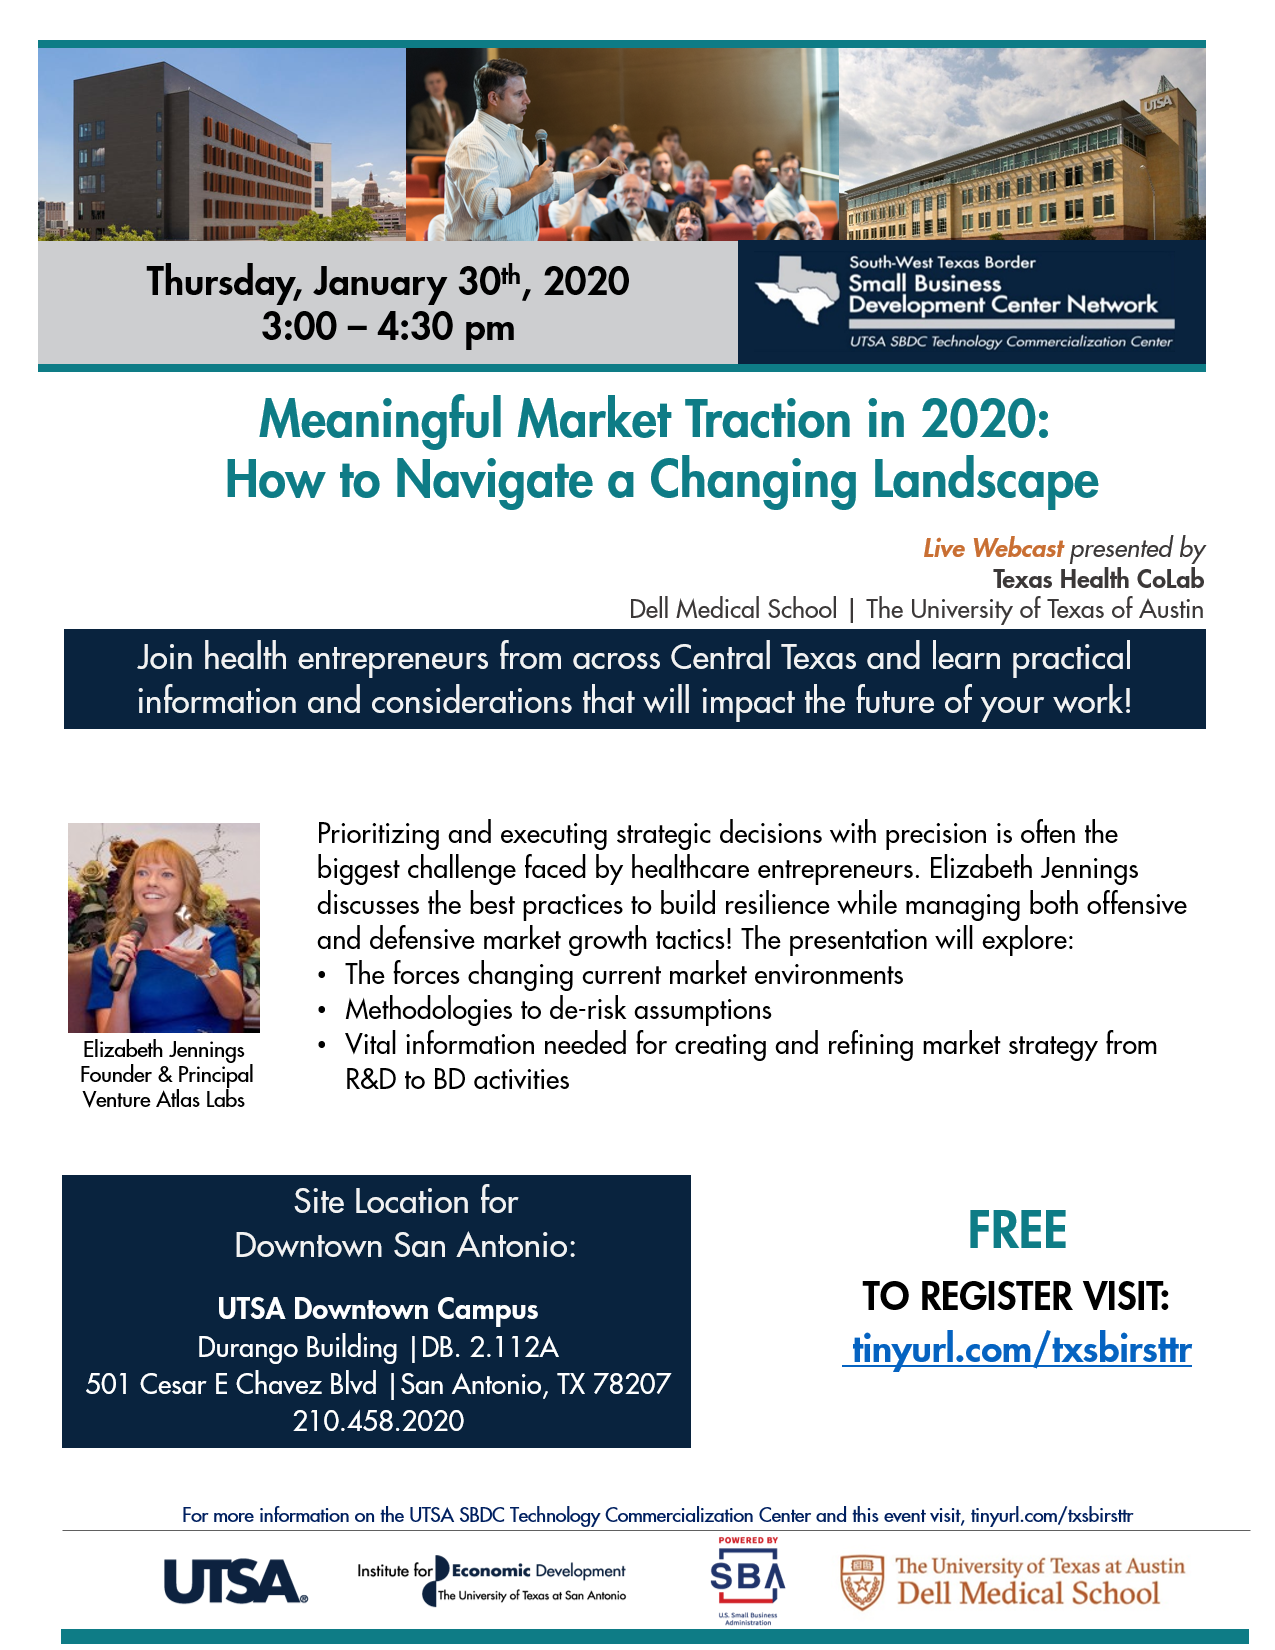 dell texas health colab Jan 2020 CORRECTED webinar flyer